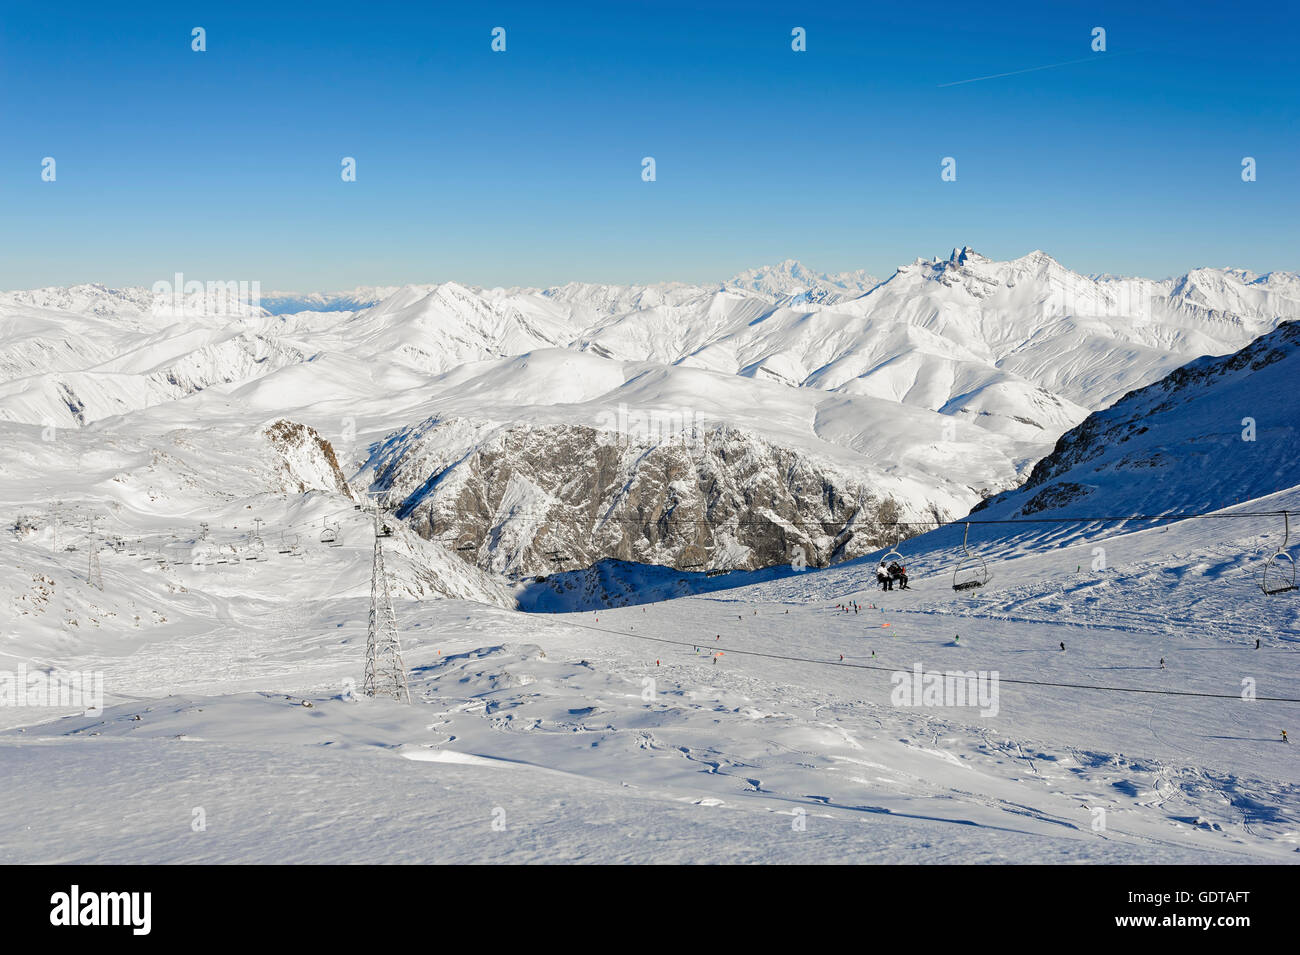 Pistes and ski lifts with in the 'Mont Blanc' in background, winter time, ski resort 'Les Deux Alpes, - Stock Image